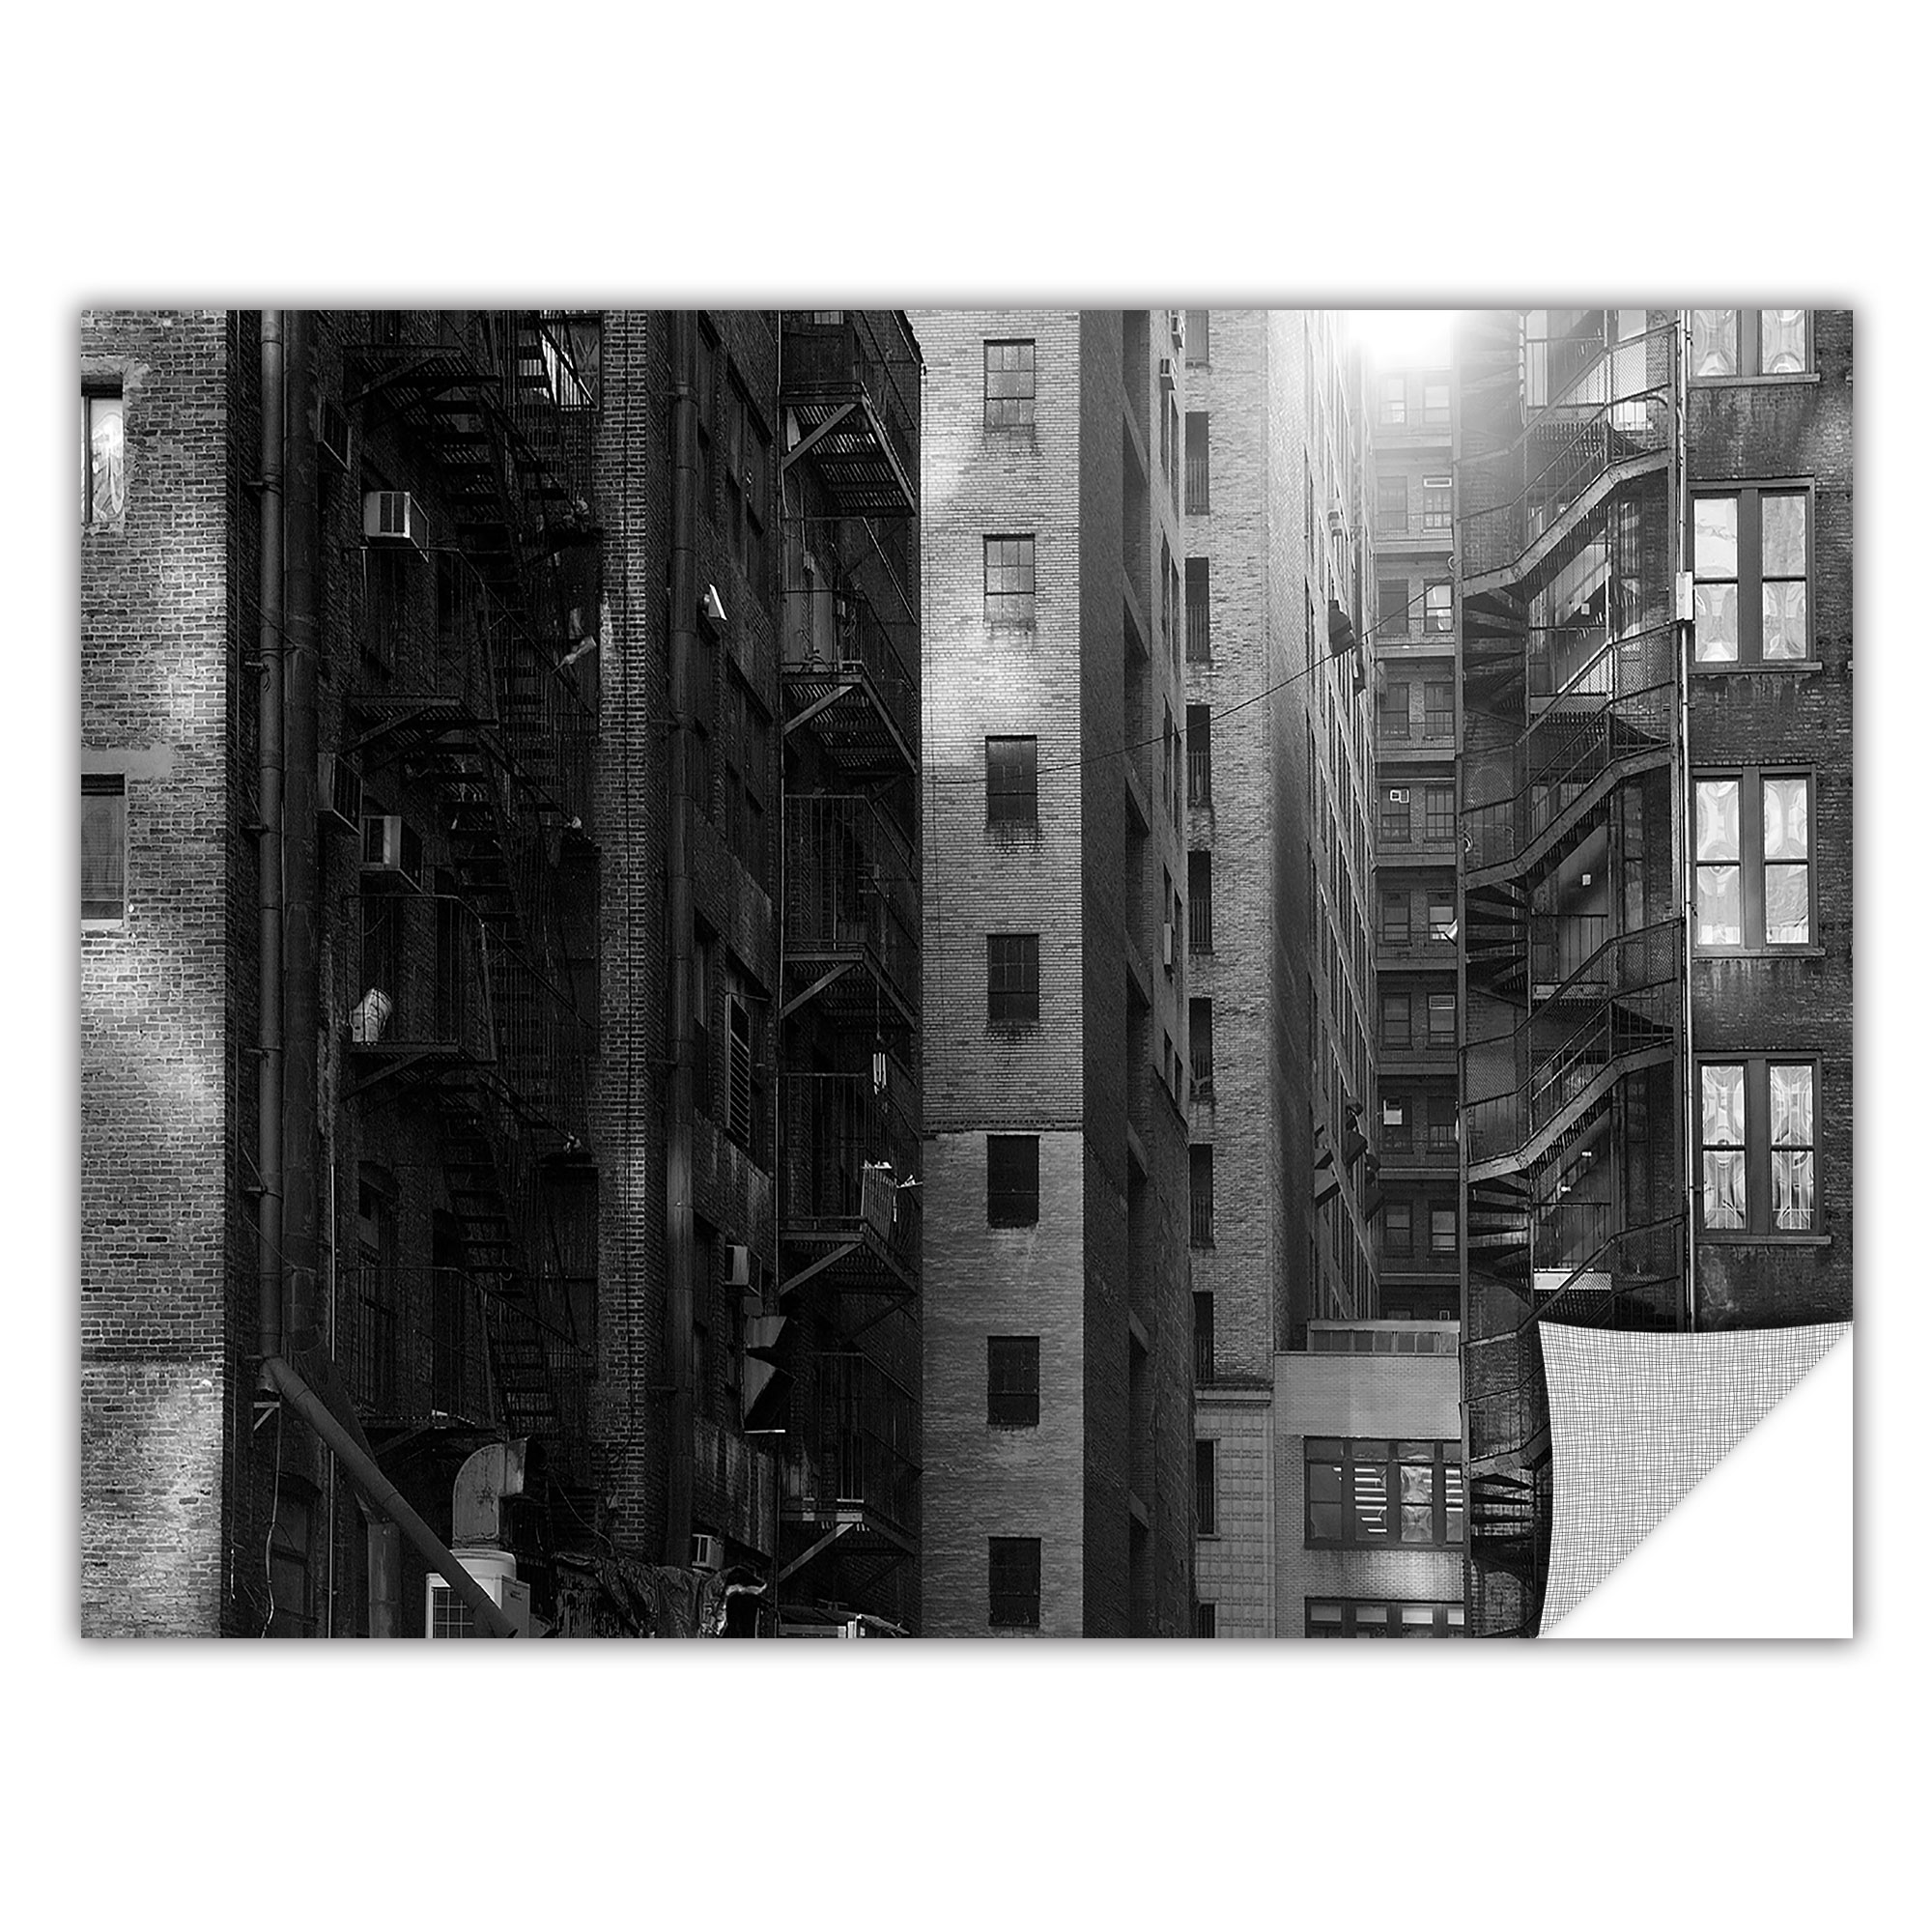 ArtWall Buildings by Revolver Ocelot Photographic Print